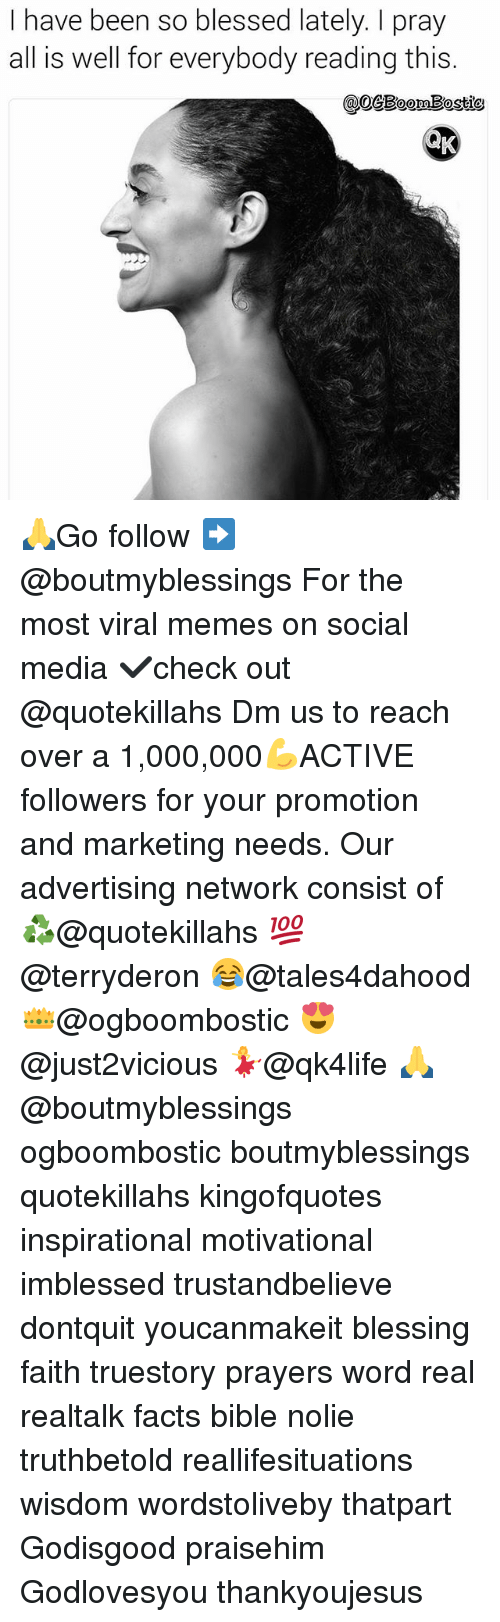 Blessed, Facts, and Memes: I have been so blessed lately. pray  all is well for everybody reading this.  @OGESoomBostio  AK 🙏Go follow ➡@boutmyblessings For the most viral memes on social media ✔check out @quotekillahs Dm us to reach over a 1,000,000💪ACTIVE followers for your promotion and marketing needs. Our advertising network consist of ♻@quotekillahs 💯@terryderon 😂@tales4dahood 👑@ogboombostic 😍@just2vicious 💃@qk4life 🙏@boutmyblessings ogboombostic boutmyblessings quotekillahs kingofquotes inspirational motivational imblessed trustandbelieve dontquit youcanmakeit blessing faith truestory prayers word real realtalk facts bible nolie truthbetold reallifesituations wisdom wordstoliveby thatpart Godisgood praisehim Godlovesyou thankyoujesus